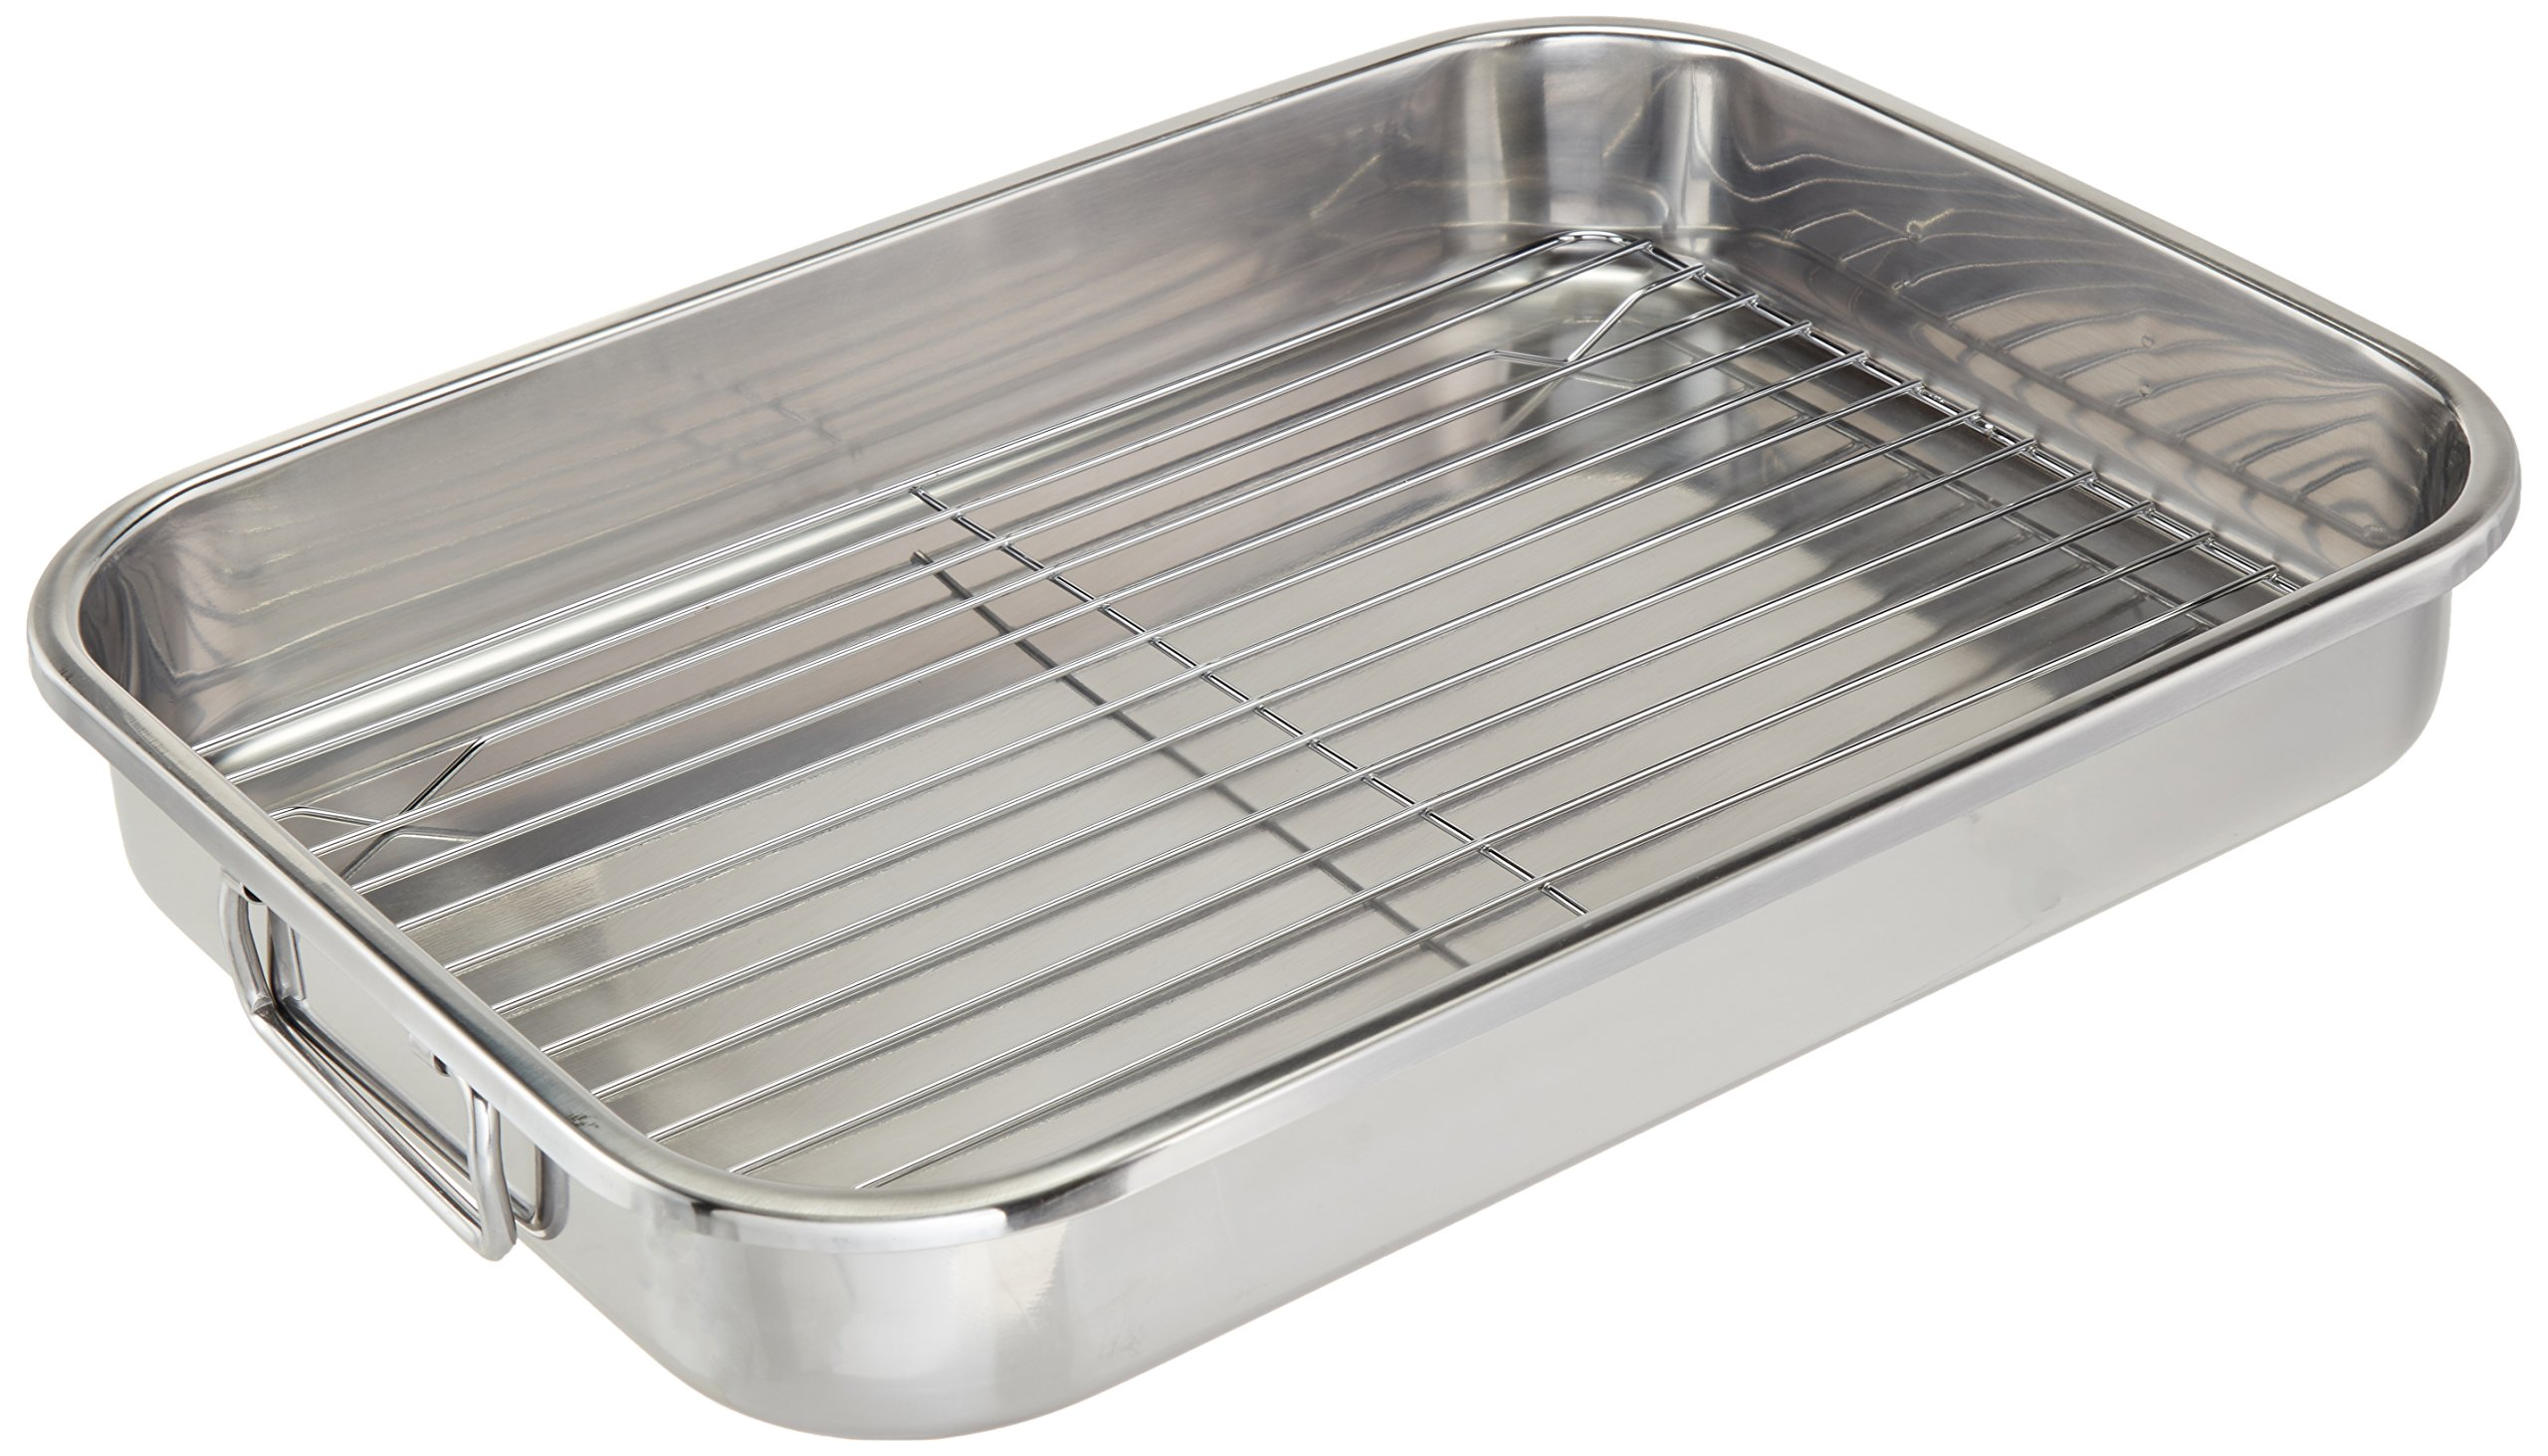 ExcelSteel 594 Roasting Pan, Stainless by ExcelSteel